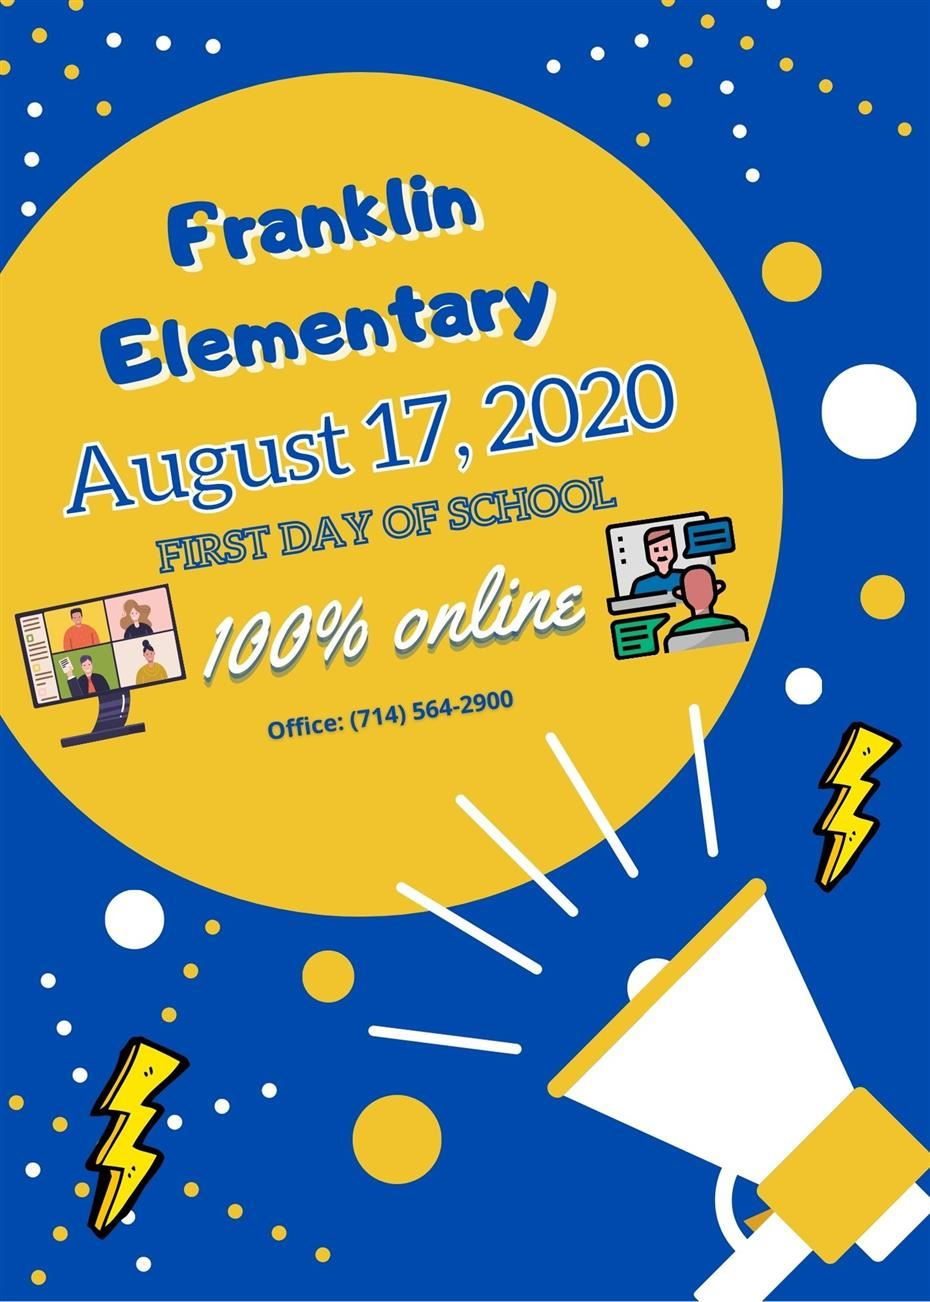 Franklin Elementary: First Day of School!